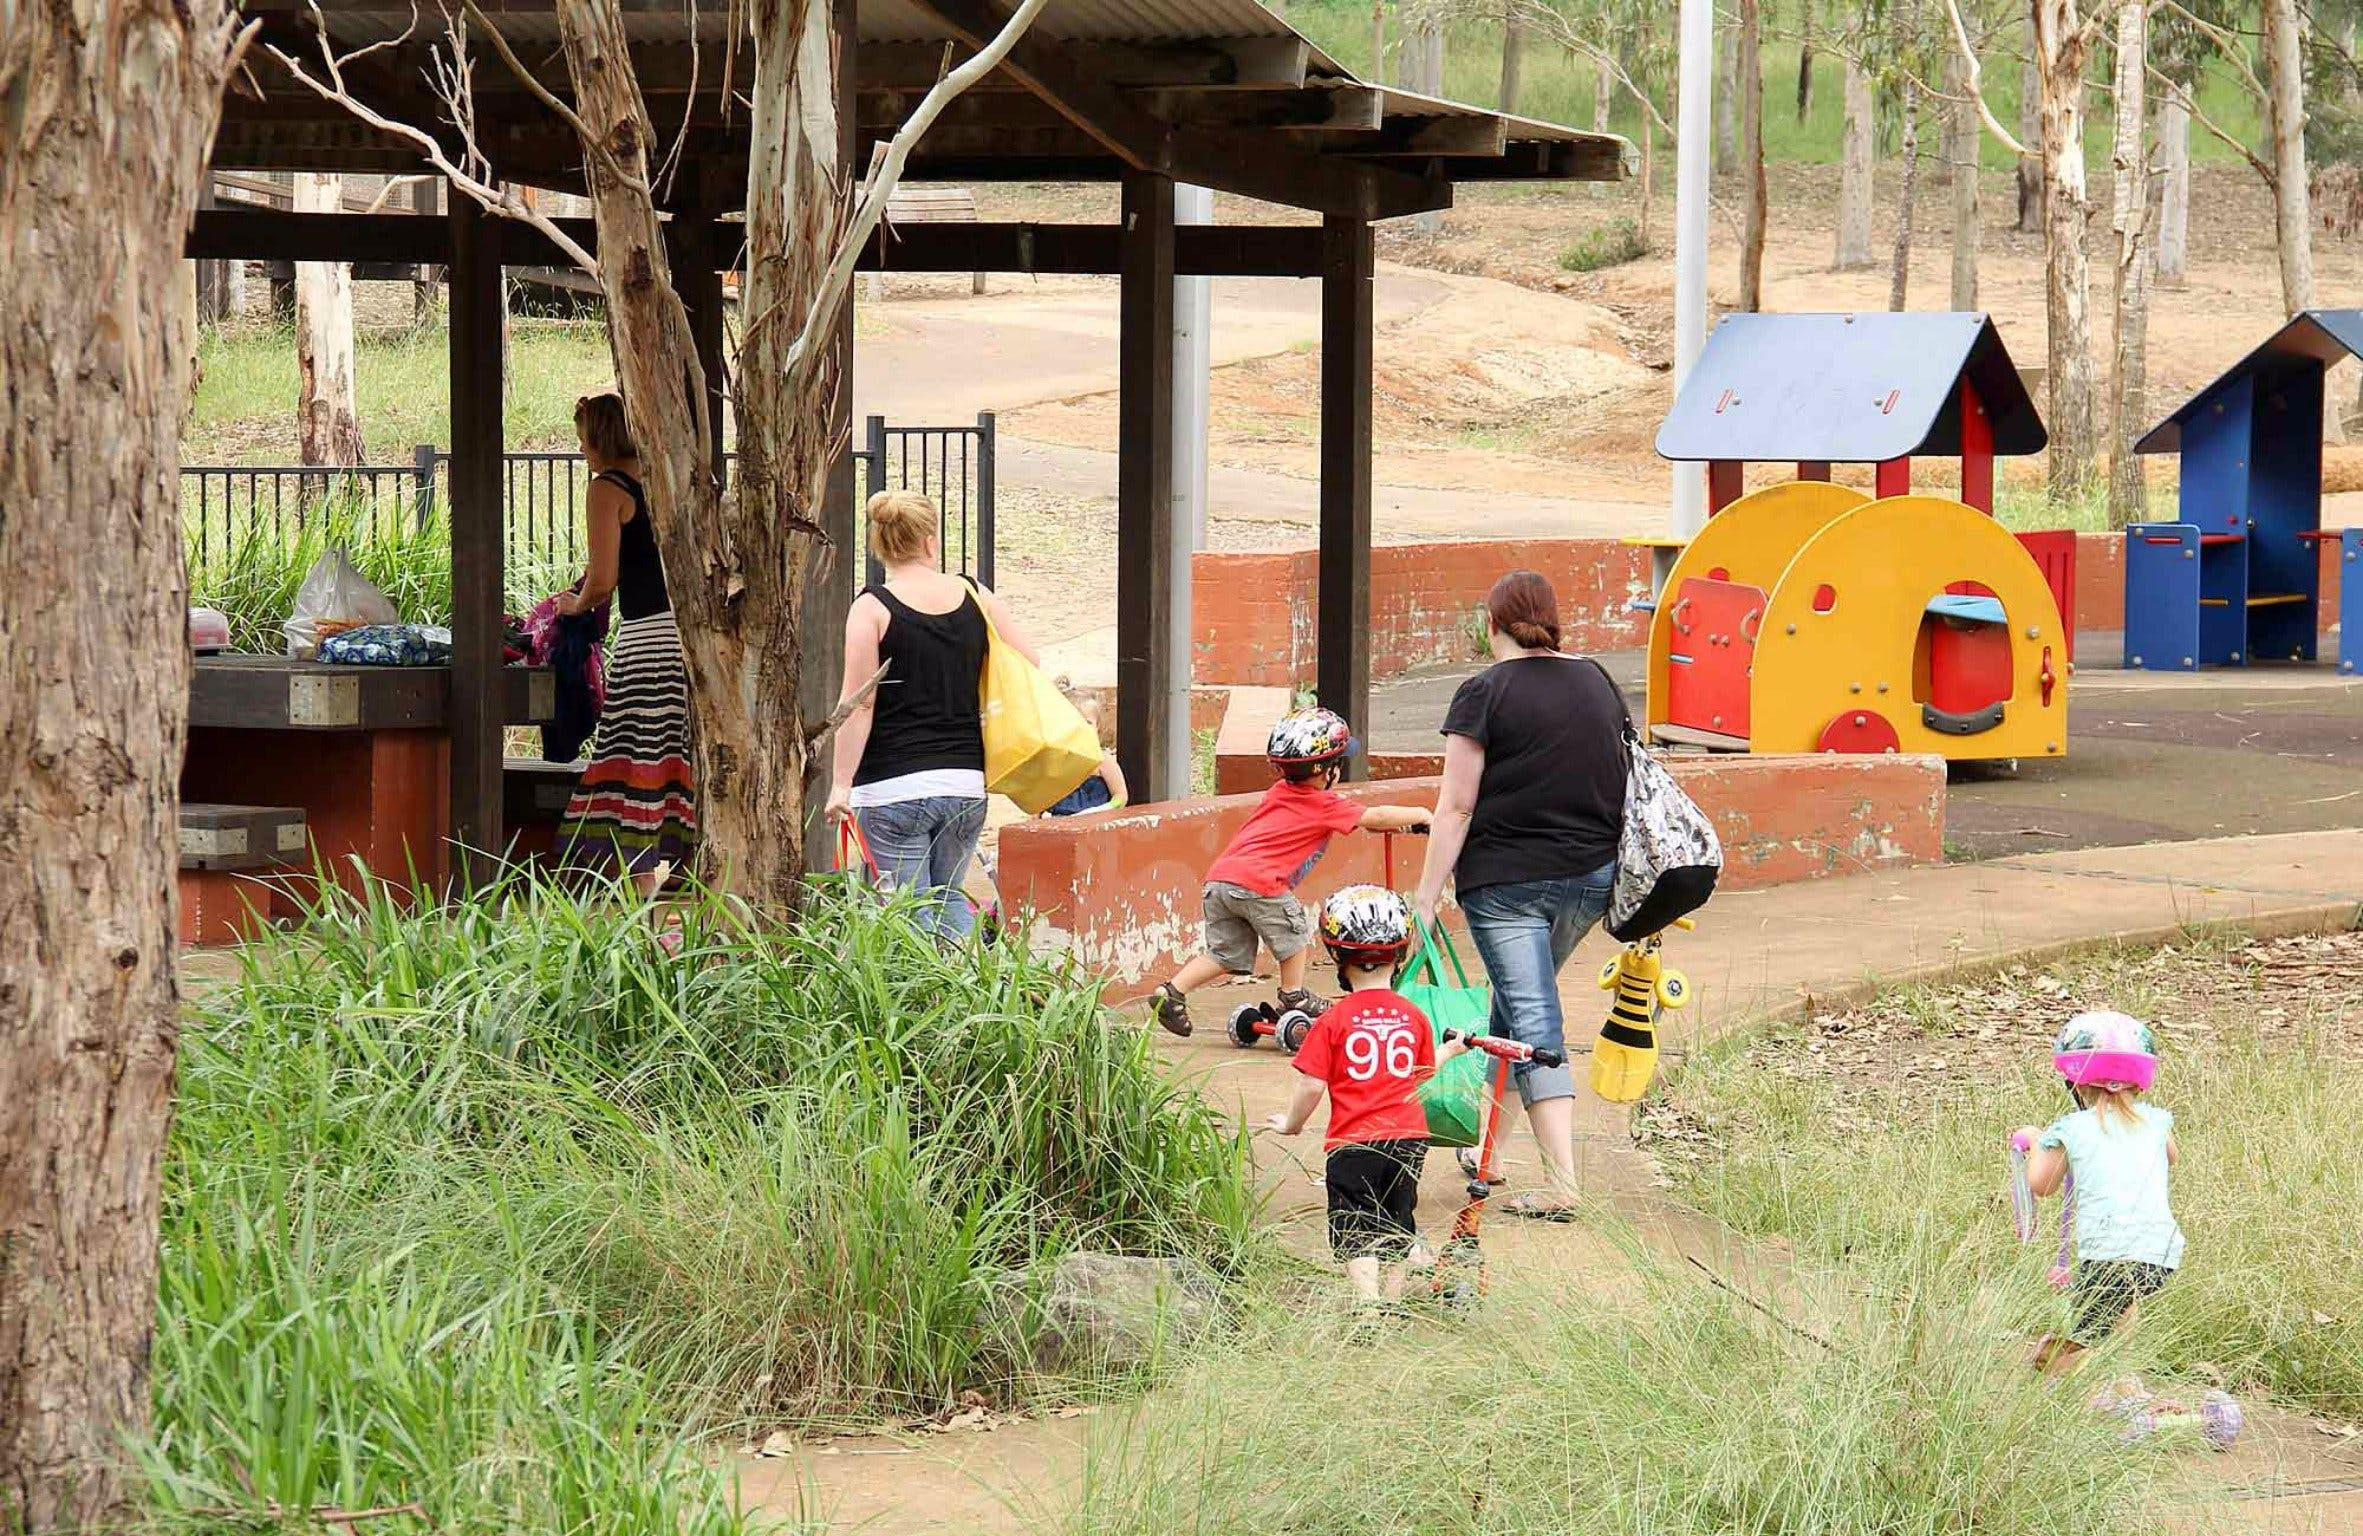 Rouse Hill picnic area and playground - Accommodation in Bendigo